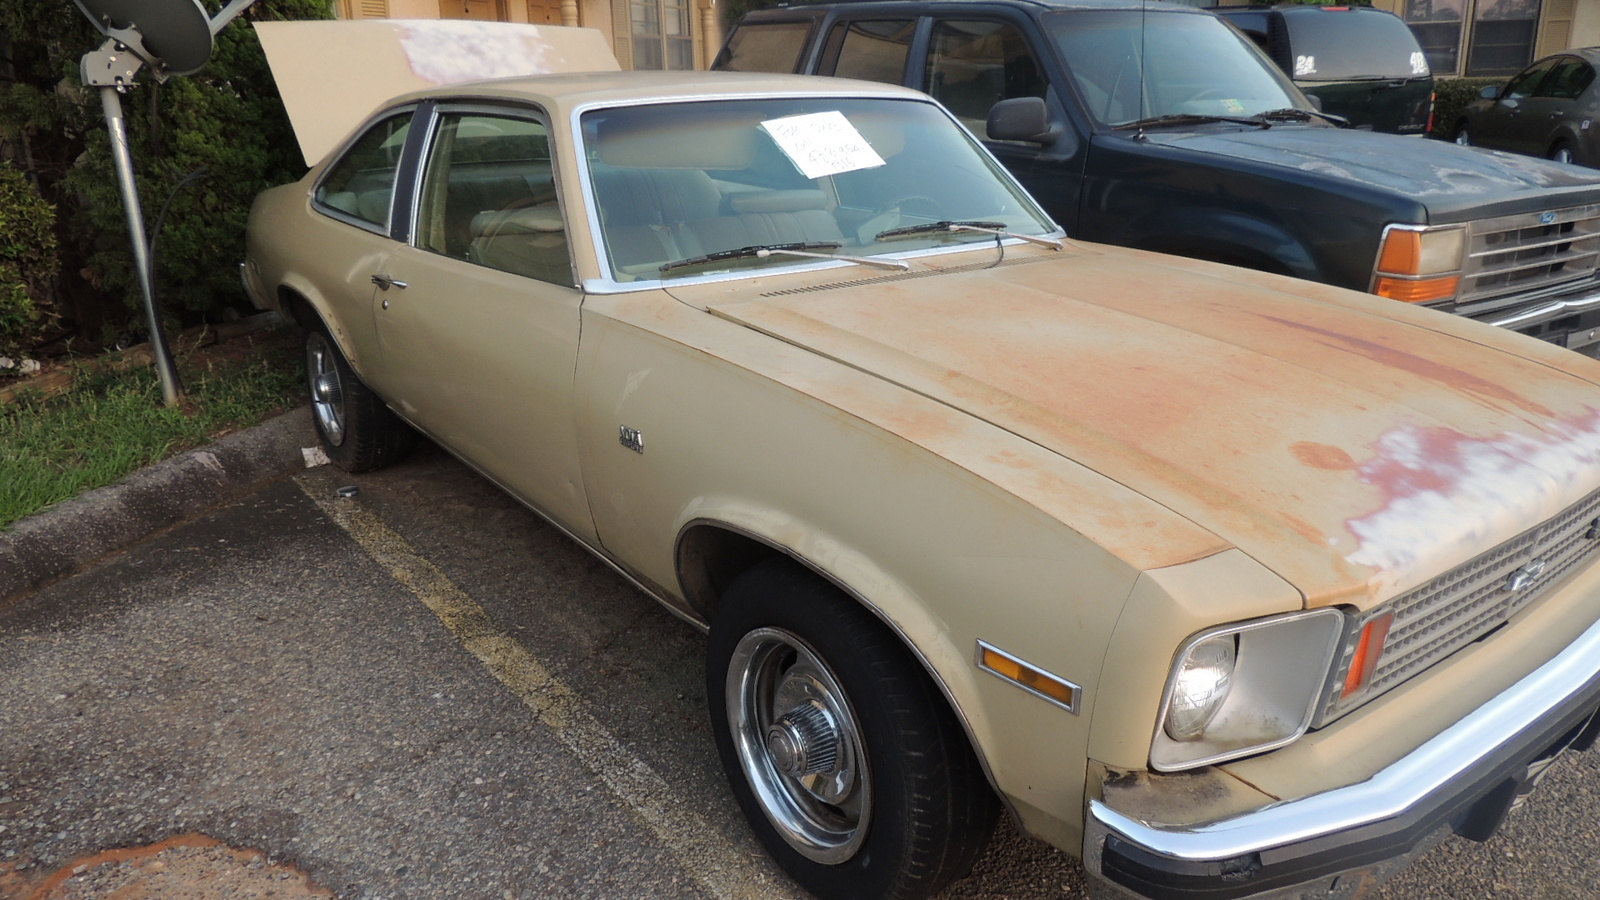 Picture of 1975 Chevrolet Nova, exterior